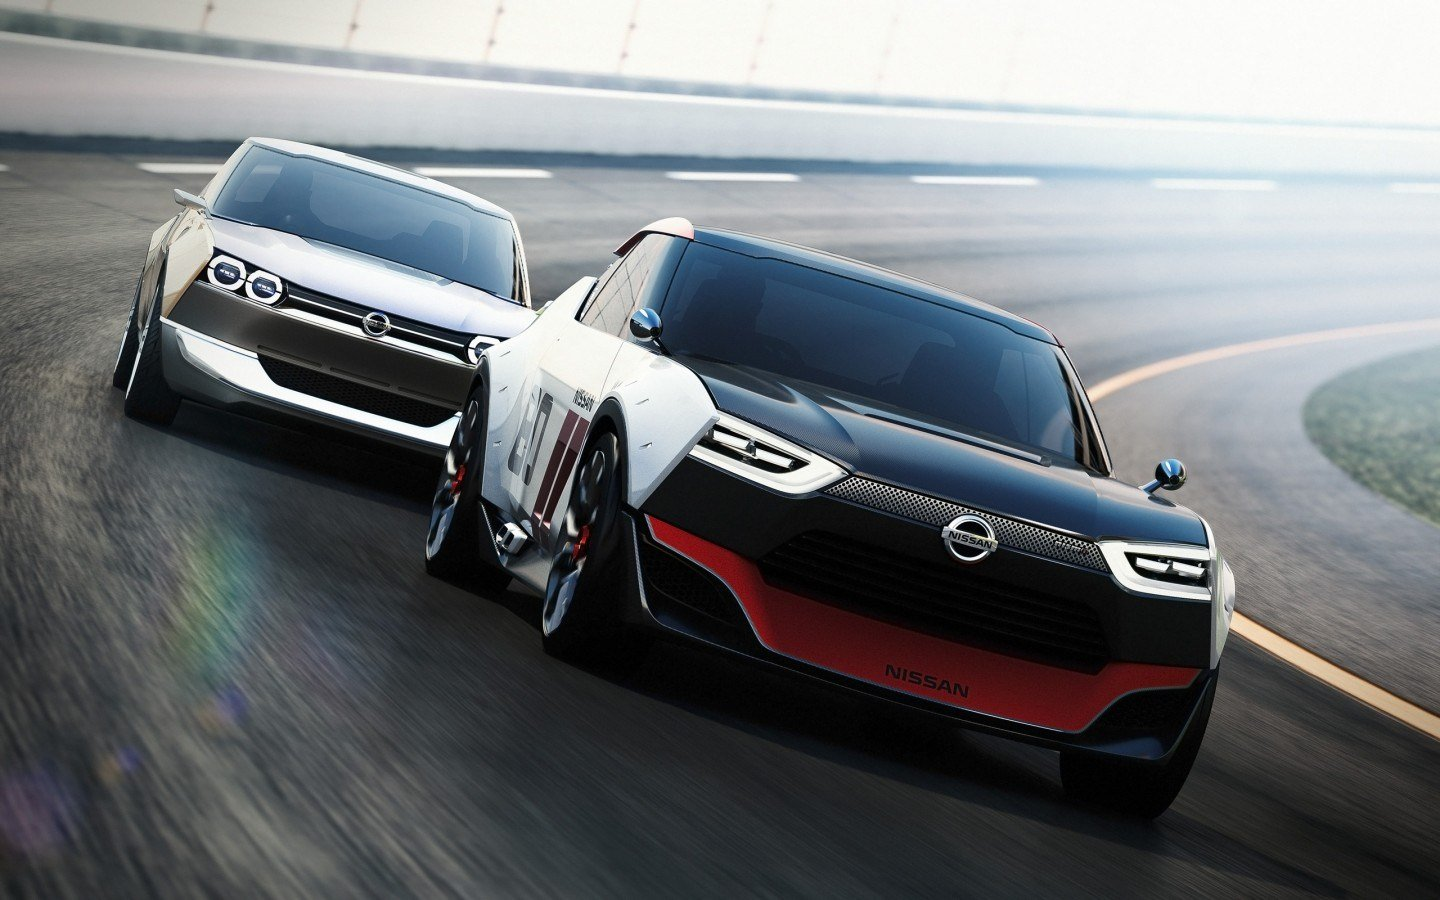 New 2013 Nissan Idx Nismo Wallpaper Hd Car Wallpapers Id 3927 On This Month